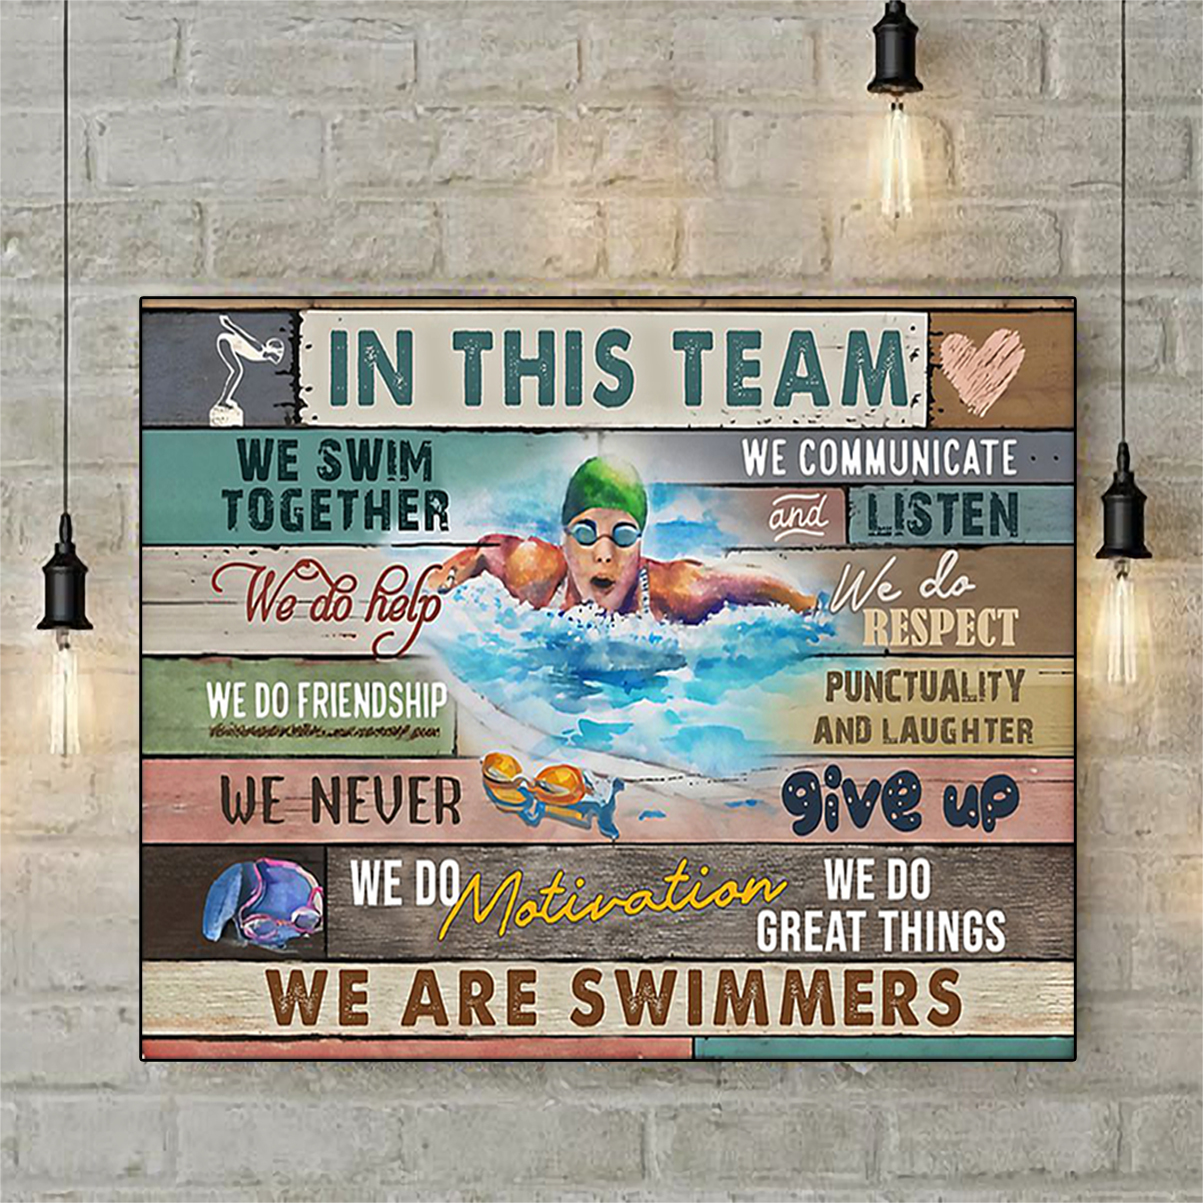 Swimming in this team poster A3